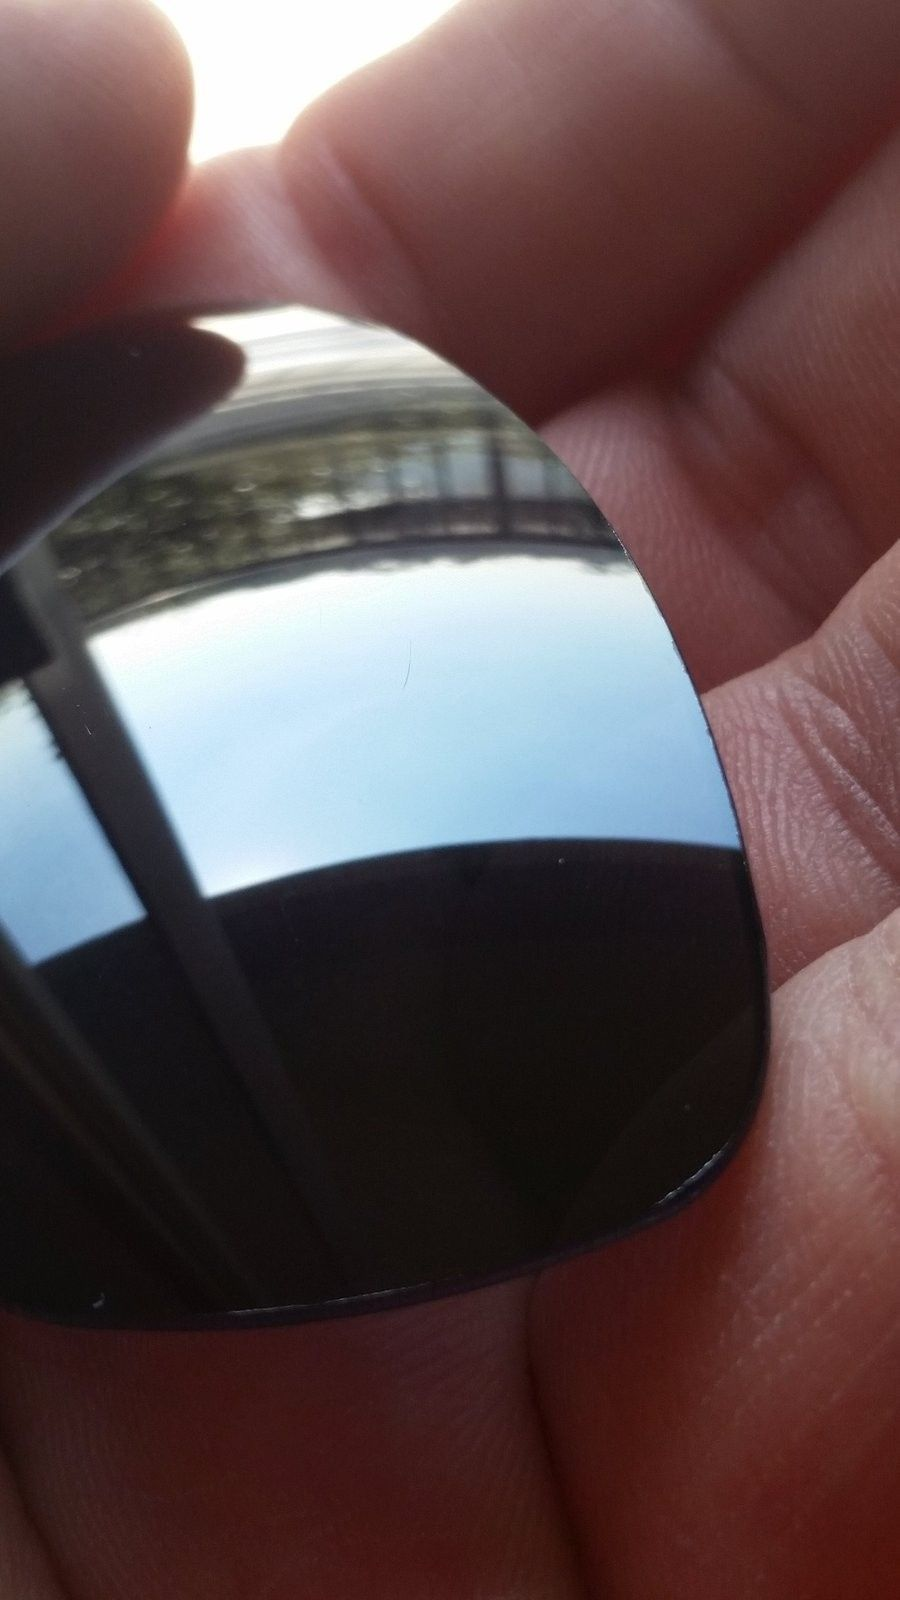 Oakley Ducati and Black iridiumJuliet lenses - uploadfromtaptalk1420652131241.jpg